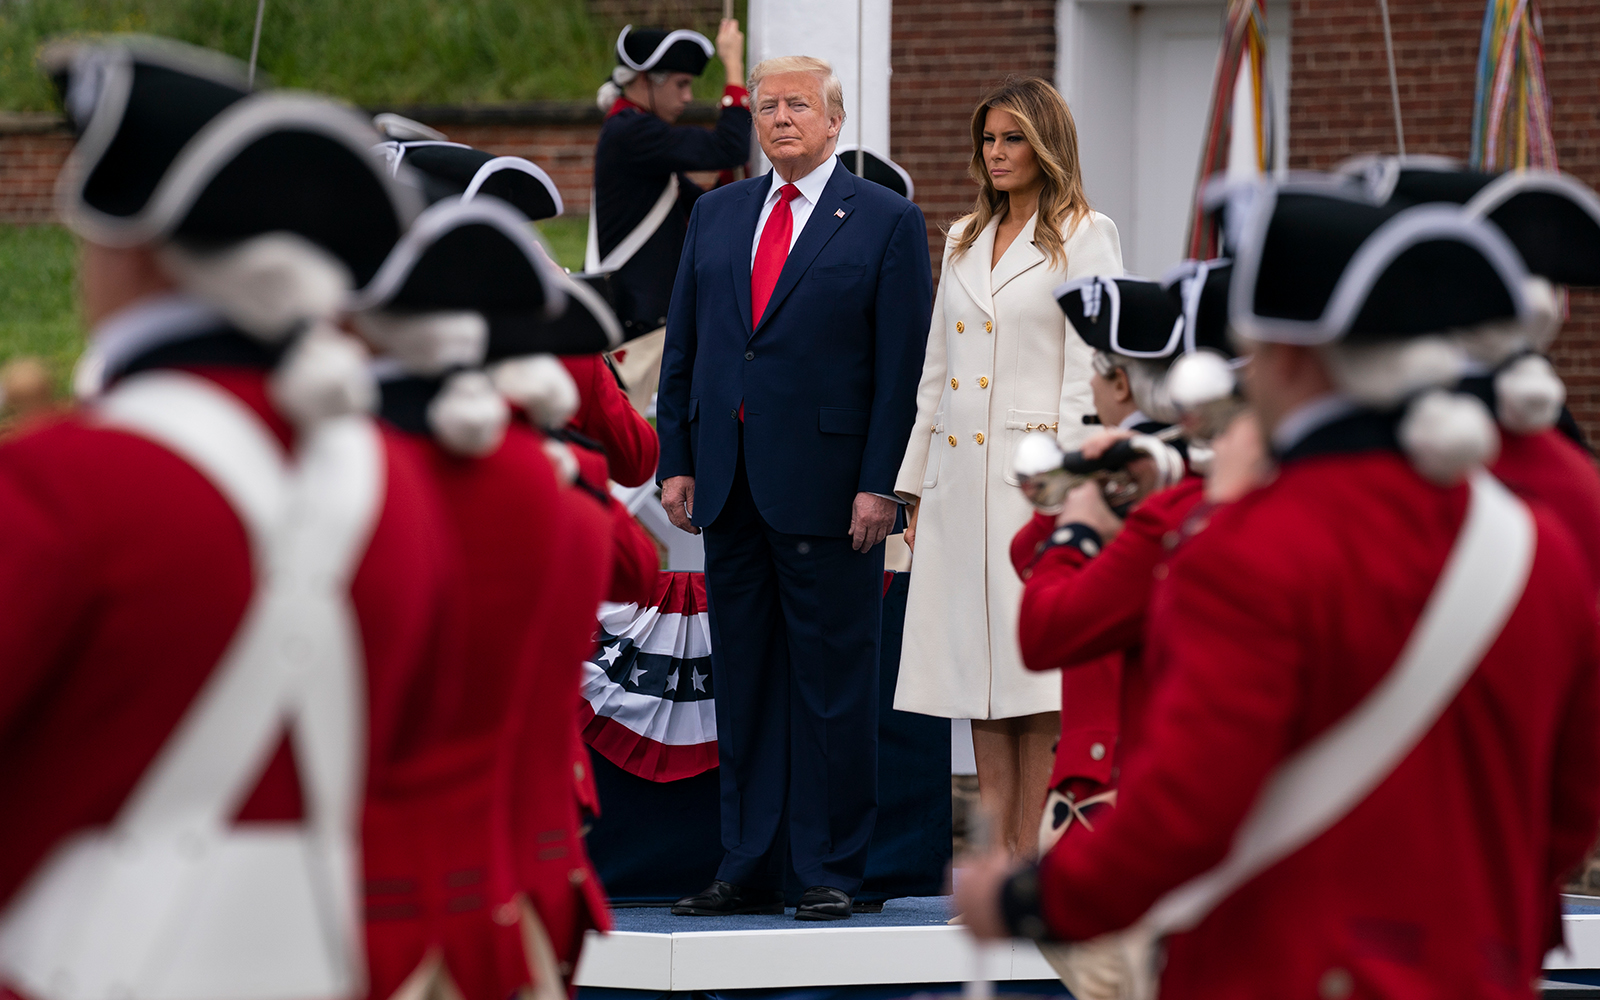 US President Donald Trump and first lady Melania Trump at a Memorial Day ceremony at Fort McHenry National Monument and Historic Shrine, in Baltimore, Maryland, May 25, 2020. (AP/Evan Vucci)